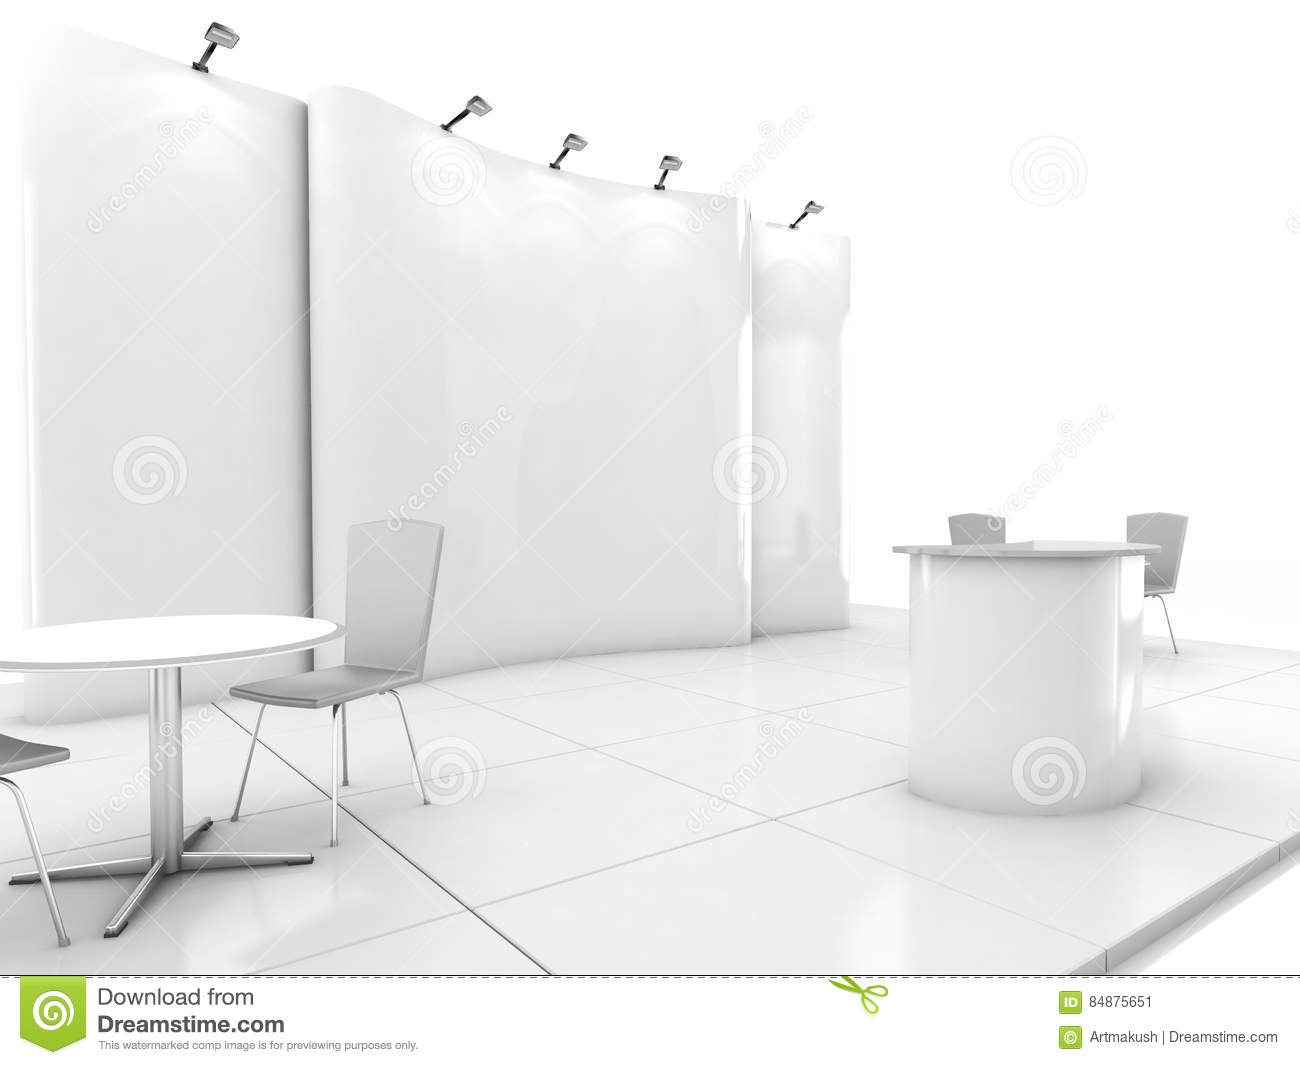 Exhibition Stand Design Template : Blank creative exhibition stand design with color shapes